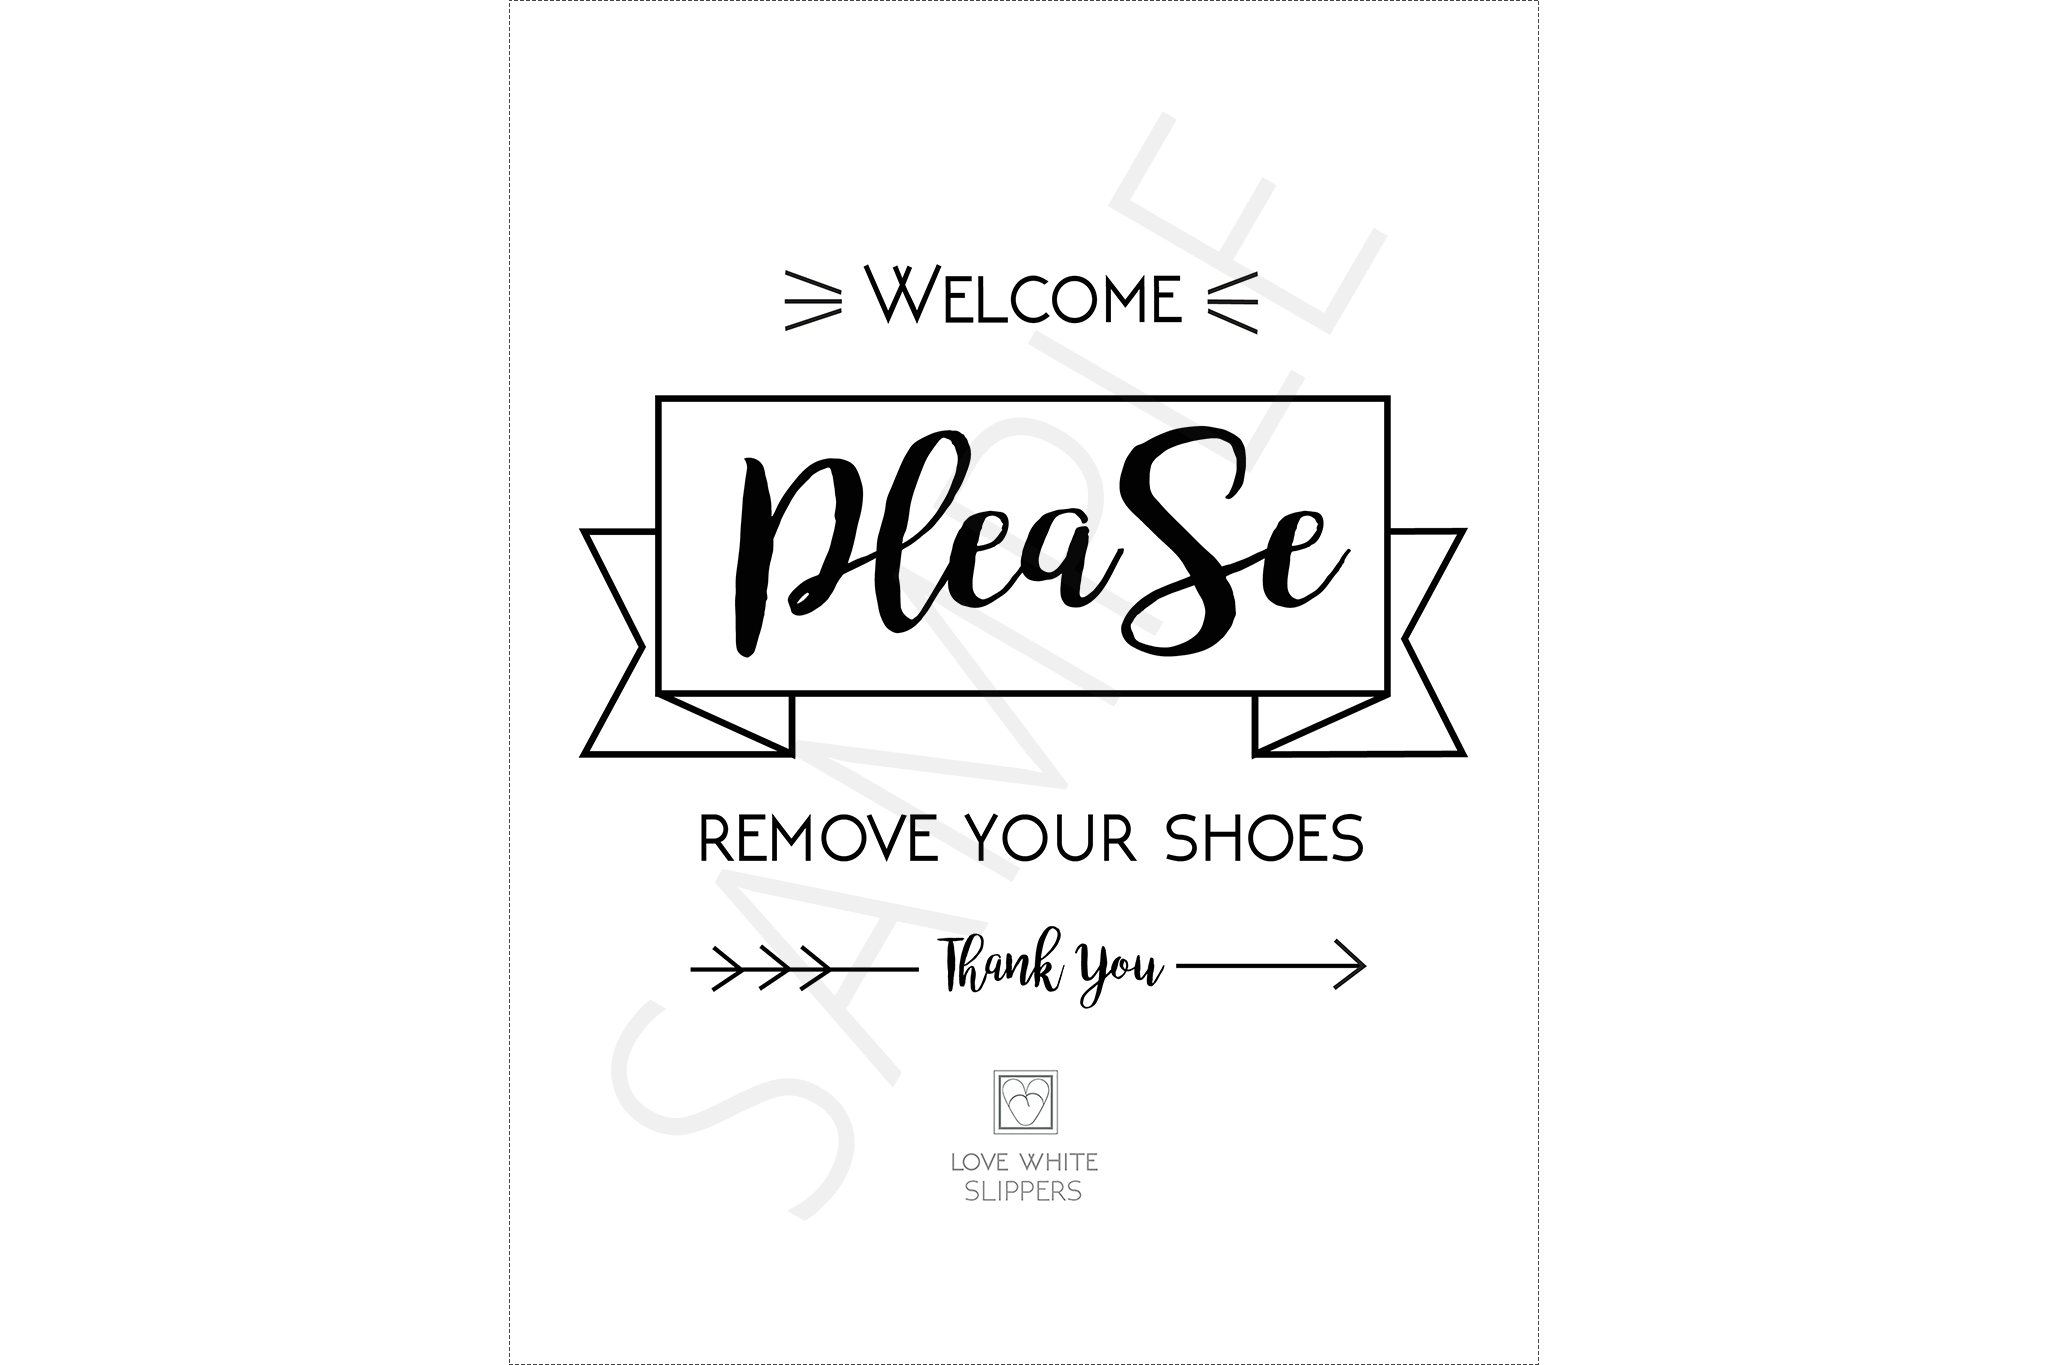 picture relating to Please Remove Your Shoes Sign Printable known as Welcome, Remember to Clear away Your Sneakers